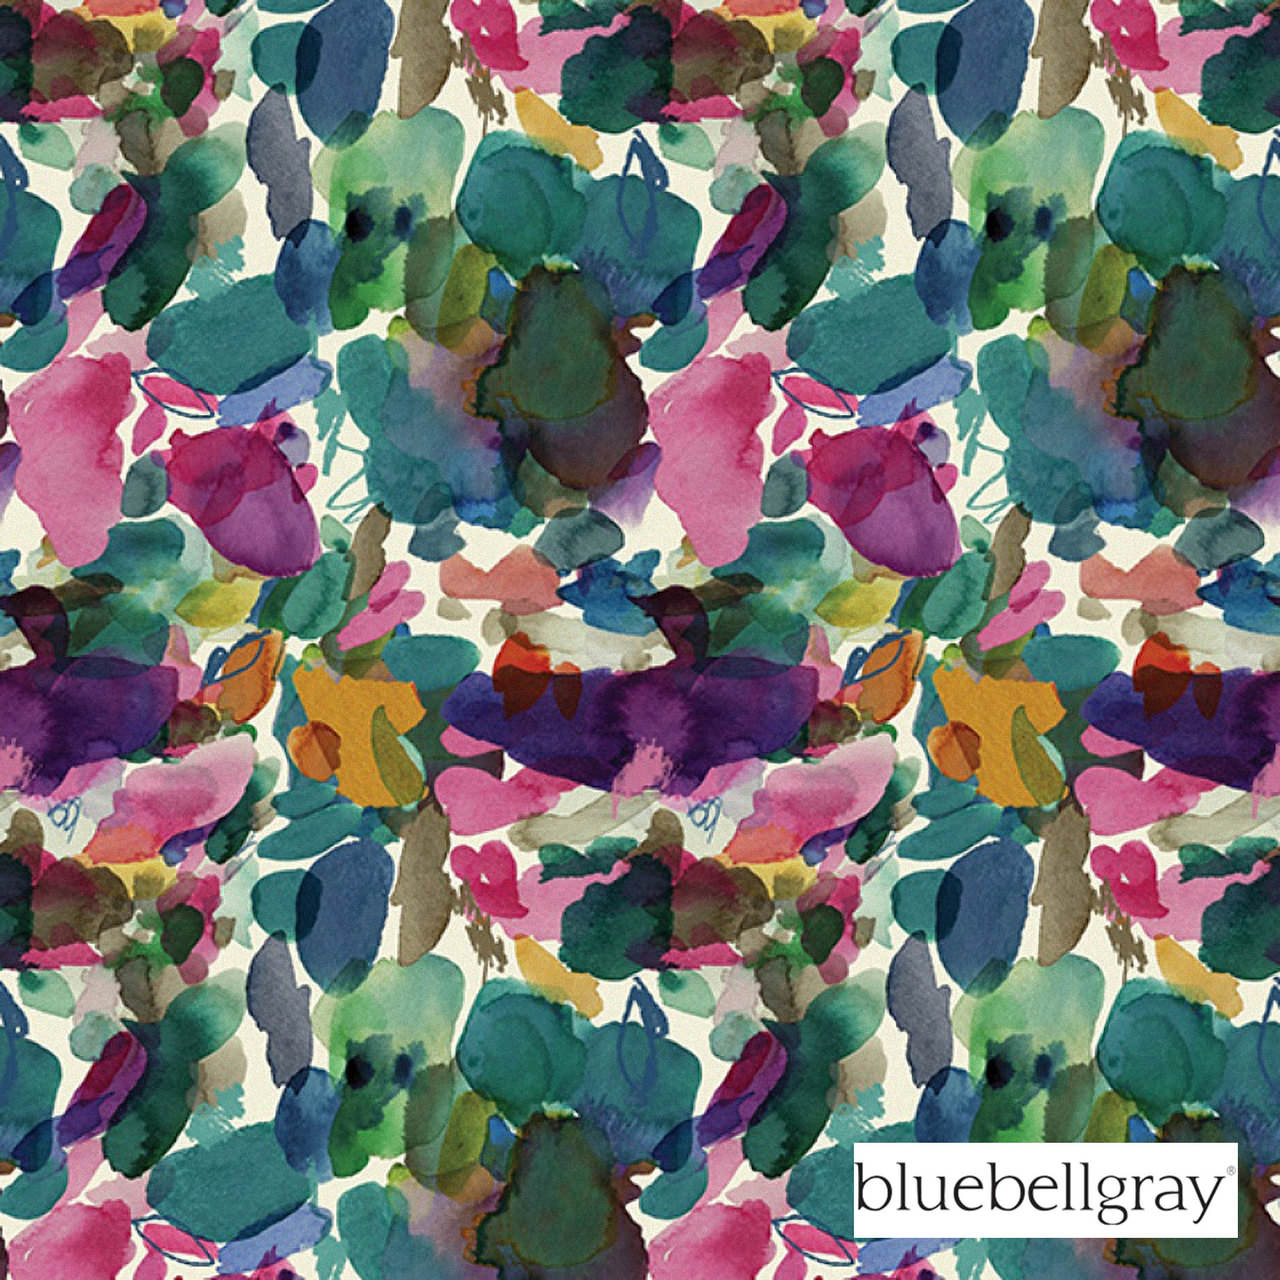 Bluebellgray Wee Archie Velvet - Jewel  | Curtain & Upholstery fabric - Blue, Contemporary, Deco, Decorative, Floral, Garden, Multi-Coloured, Natural Fibre, Pink, Purple